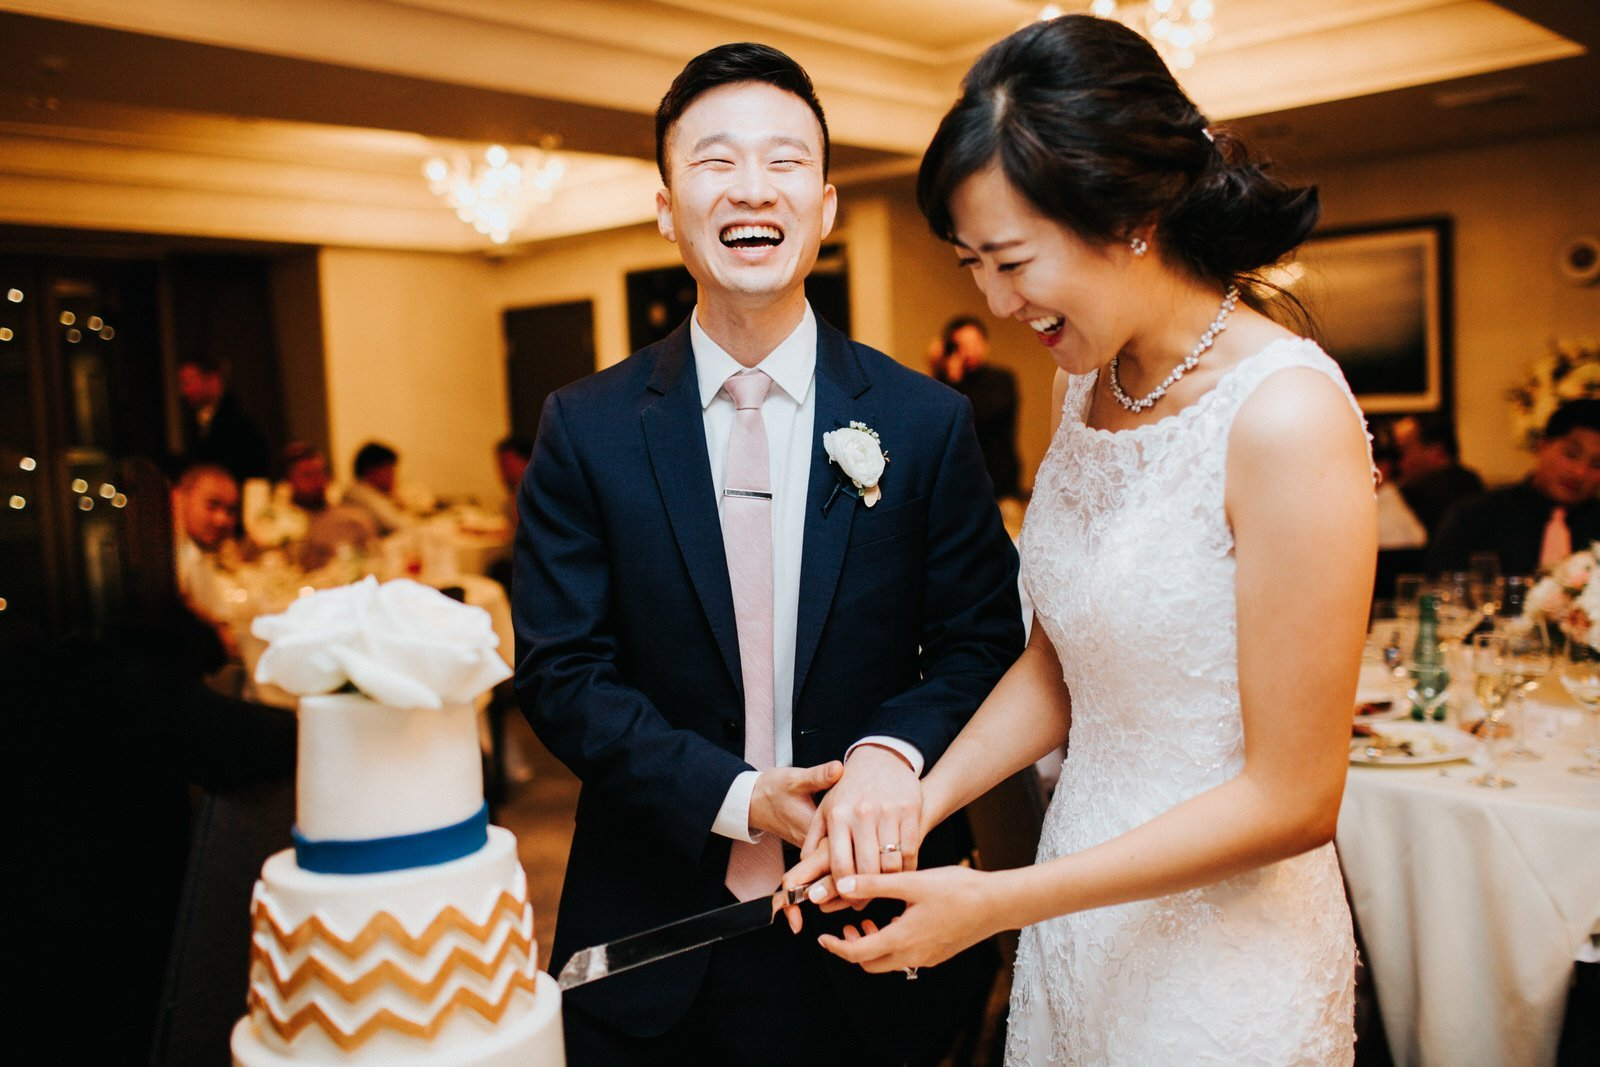 The couple cuts the cake during their reception at hotel 1000